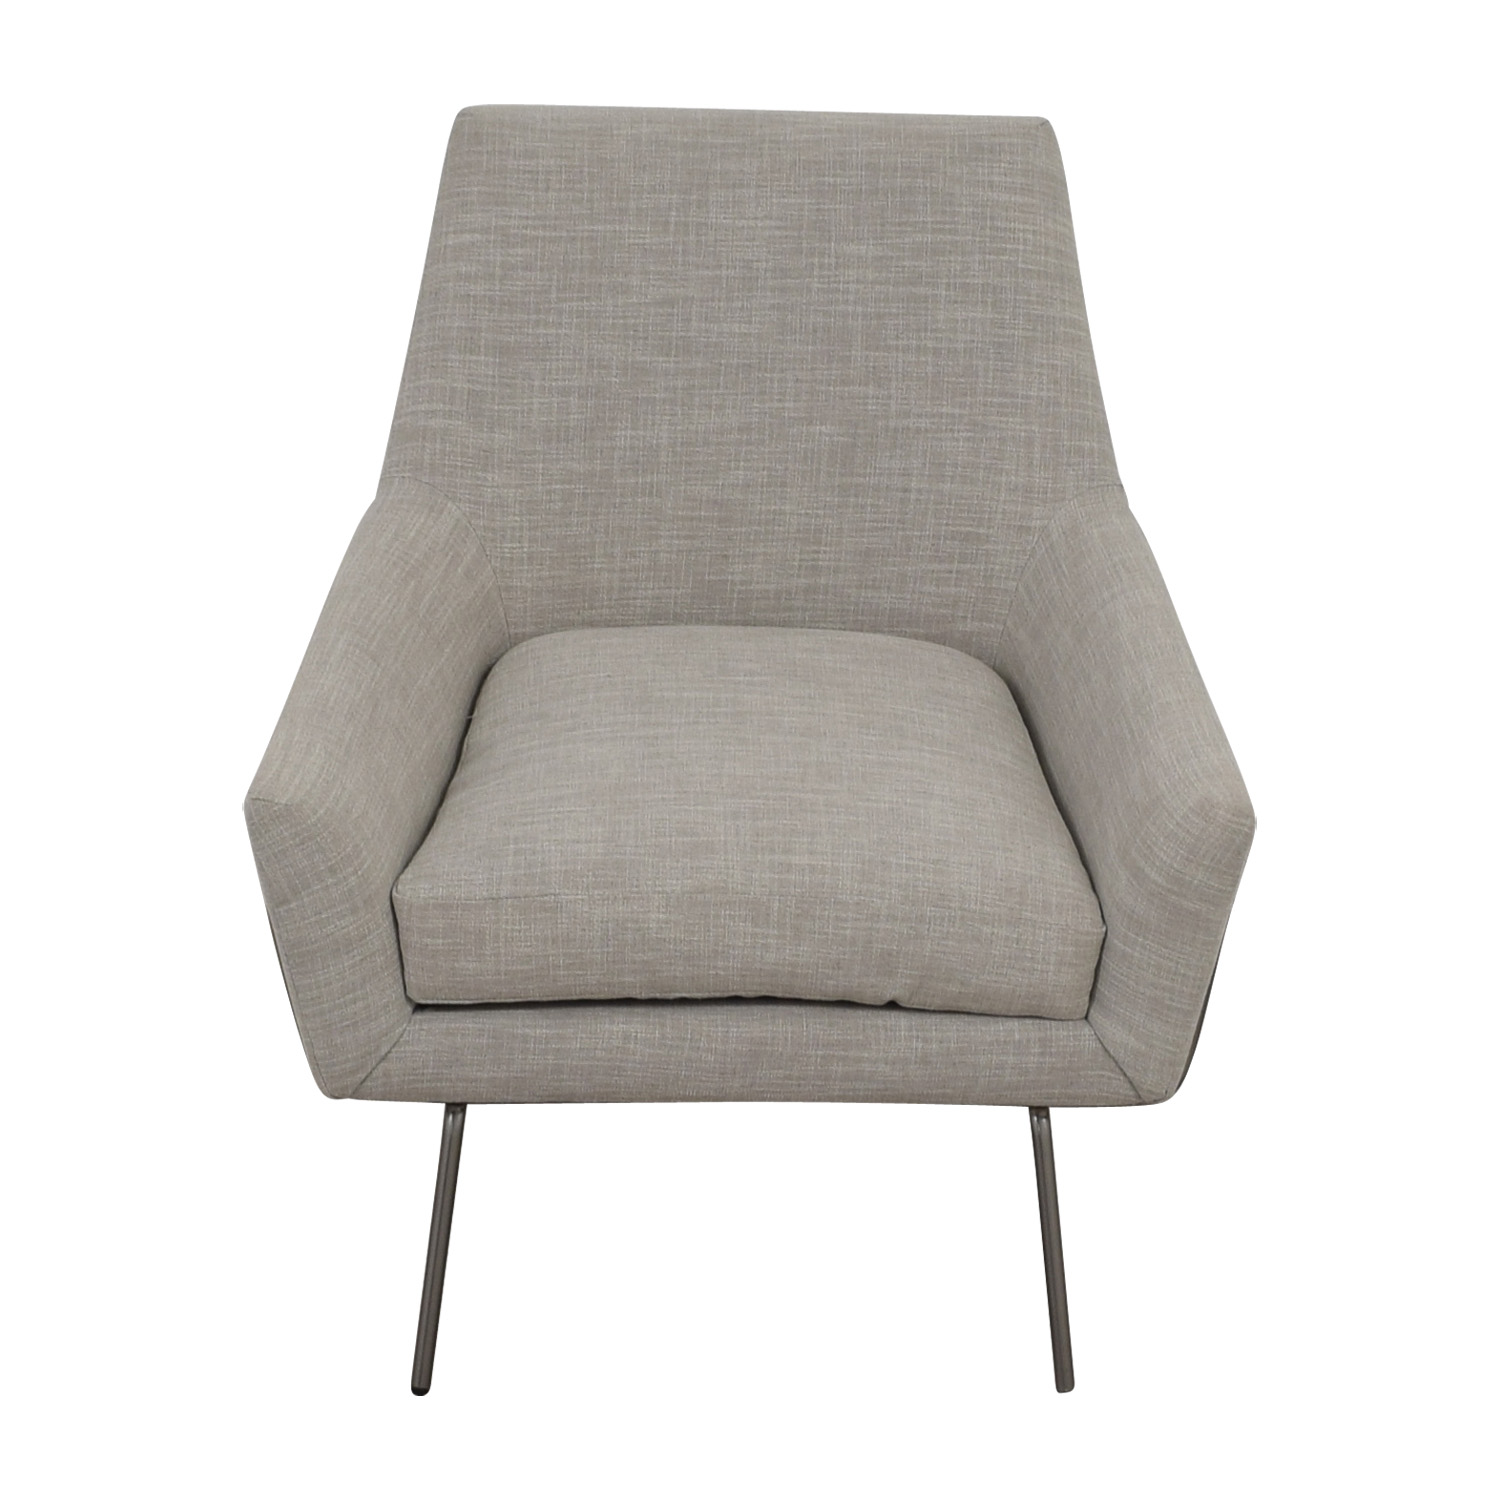 ... West Elm West Elm Lucas Grey Wire Base Chair Chairs ...